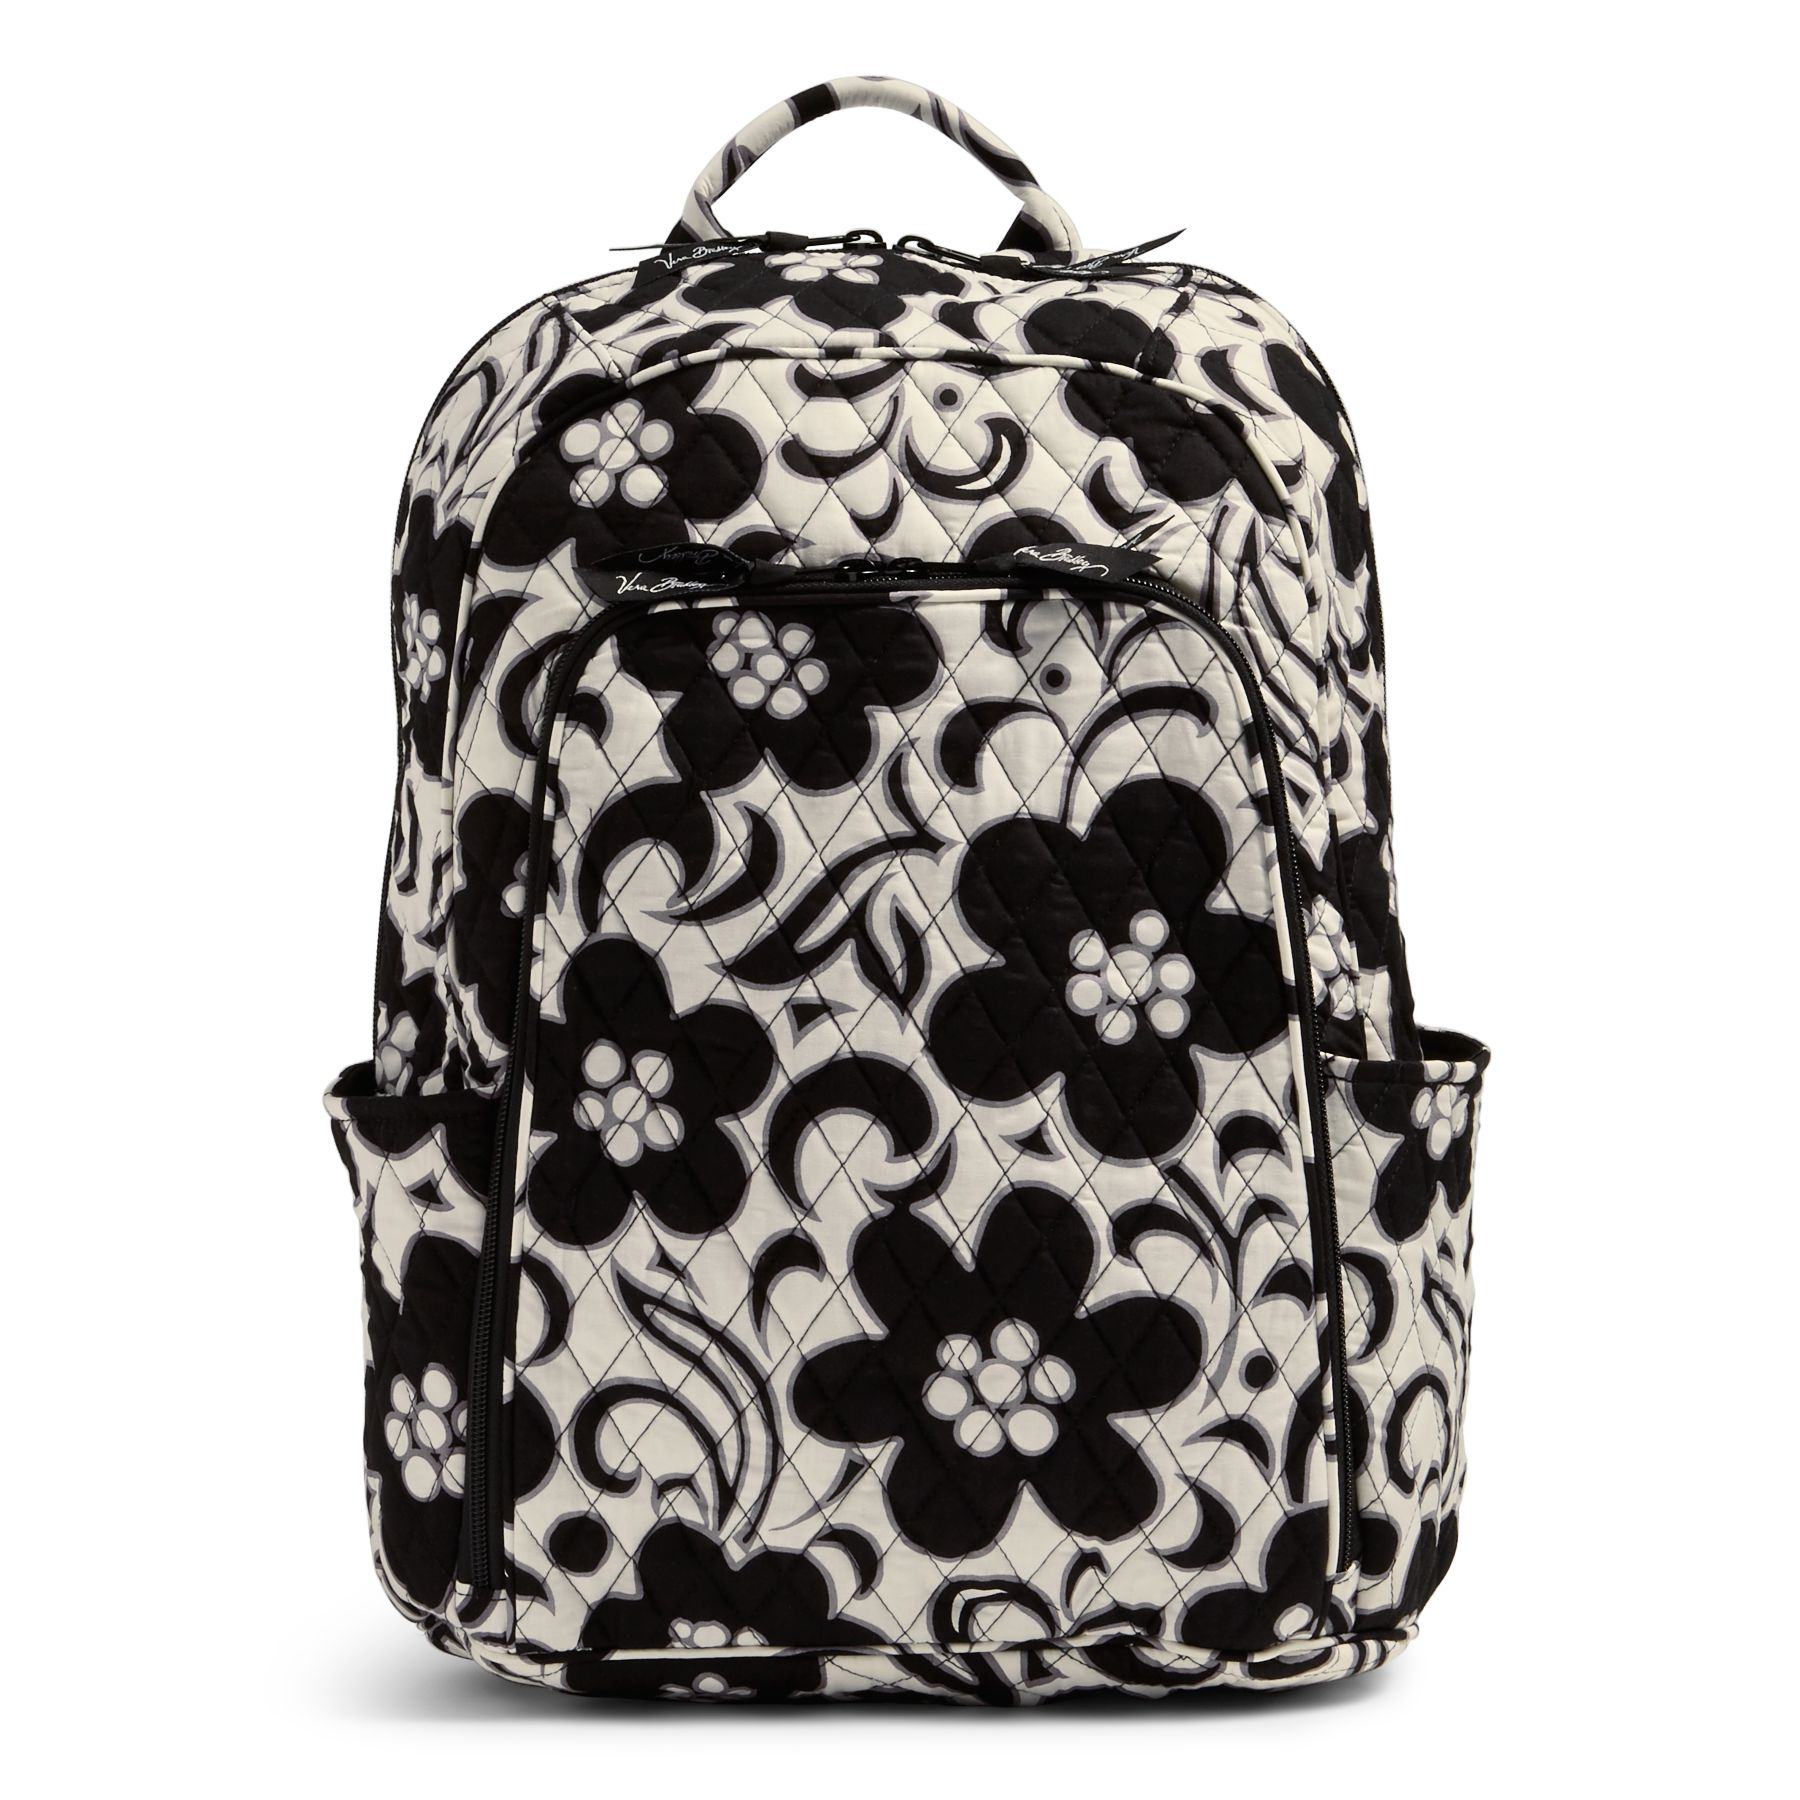 3d21c73f6c6f All Black Vera Bradley Backpack- Fenix Toulouse Handball